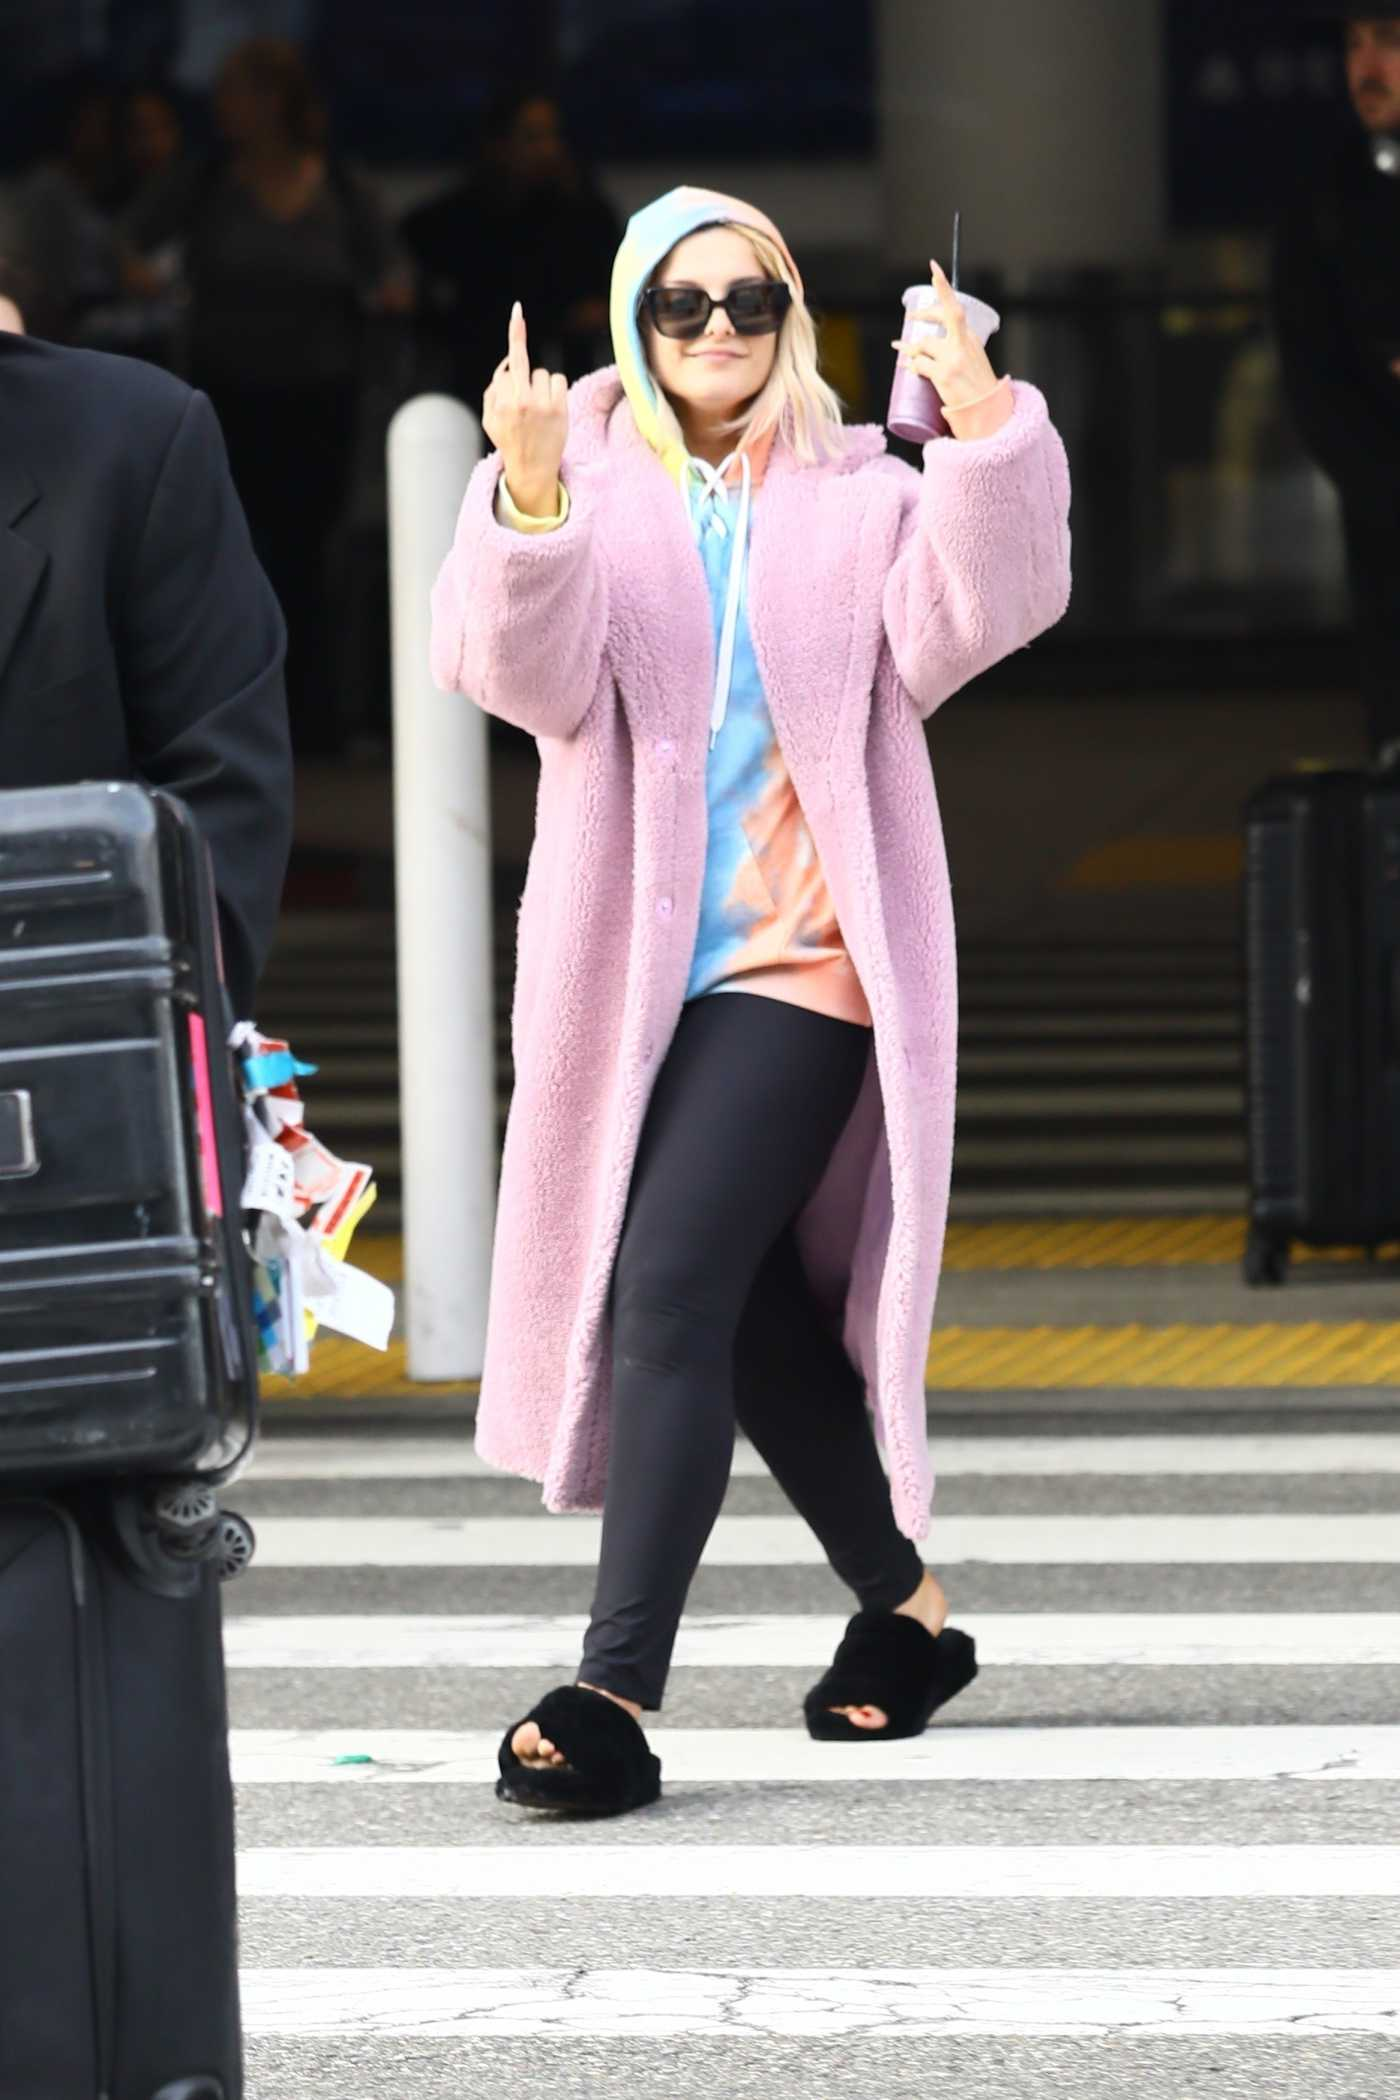 Bebe Rexha in a Pink Fur Coat Arrives at LAX Airport in Los Angeles 01/03/2019